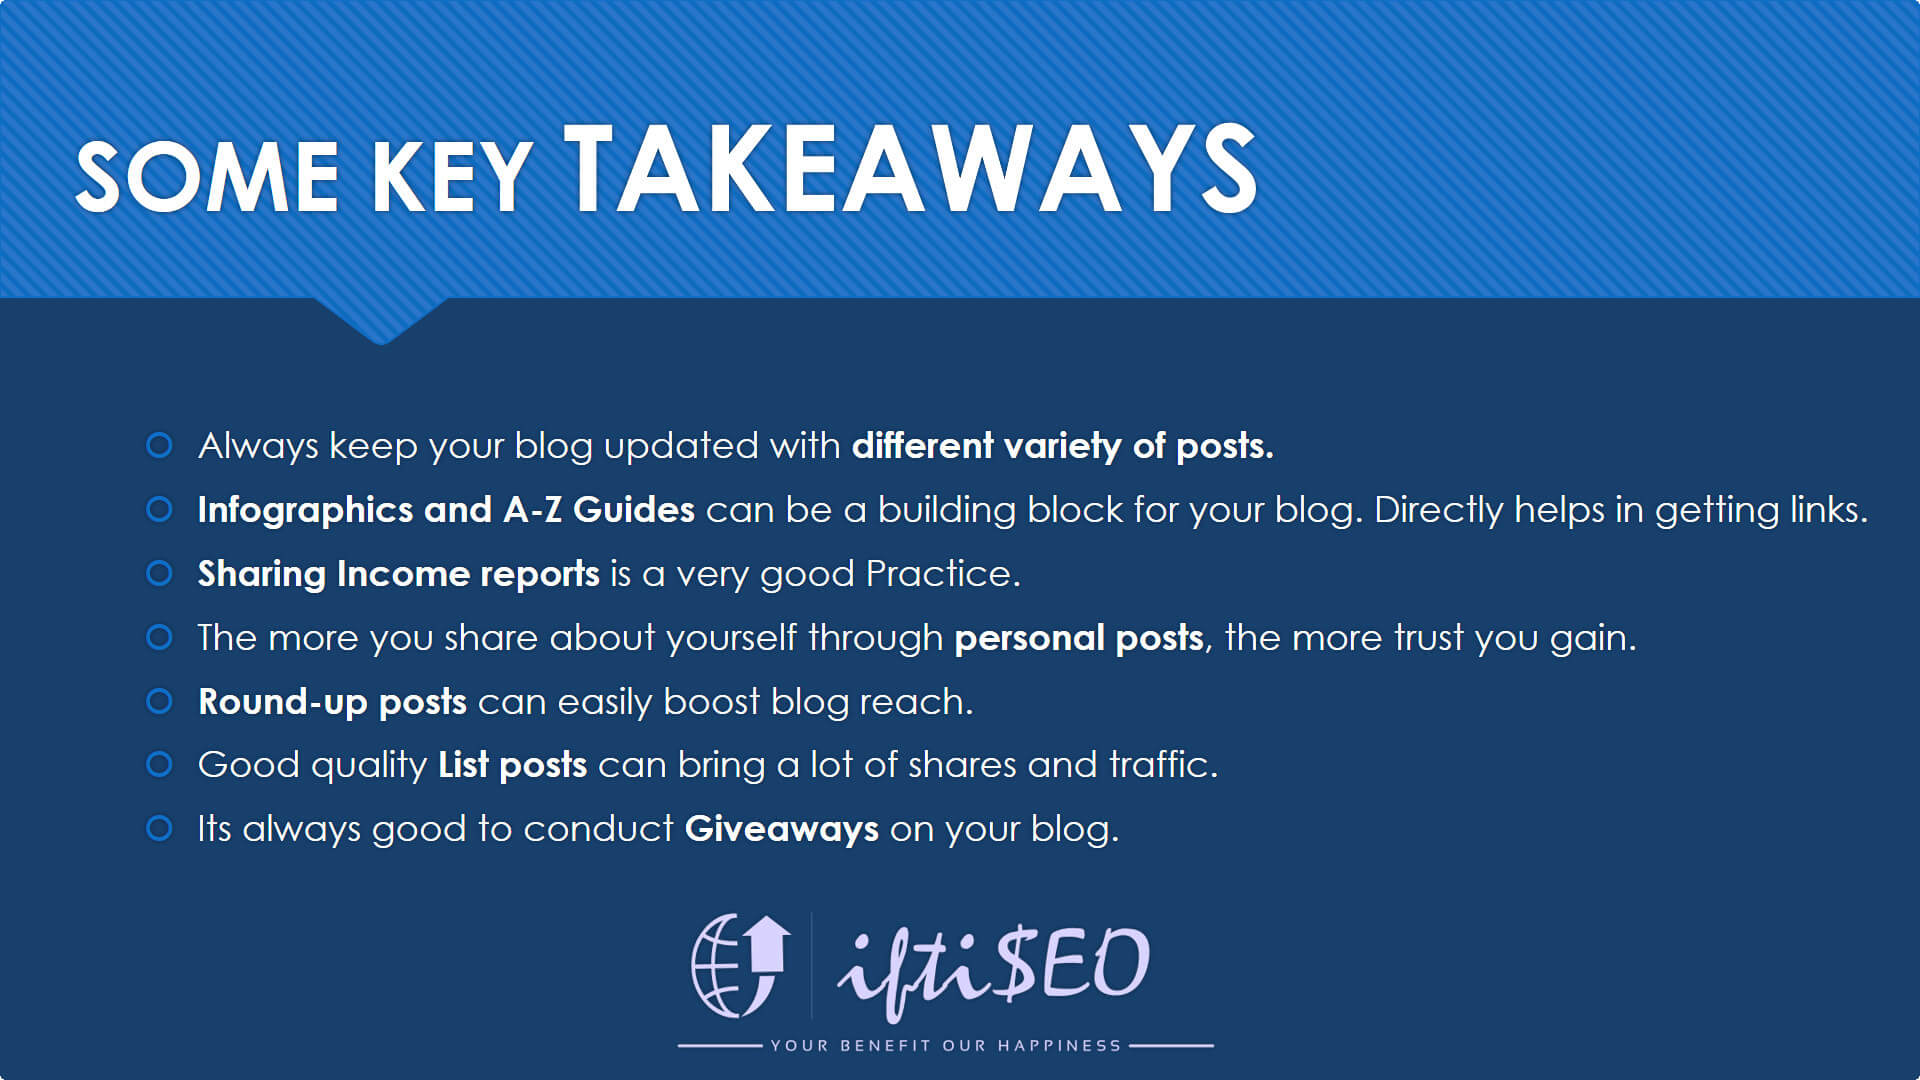 iftiseo post takeaways